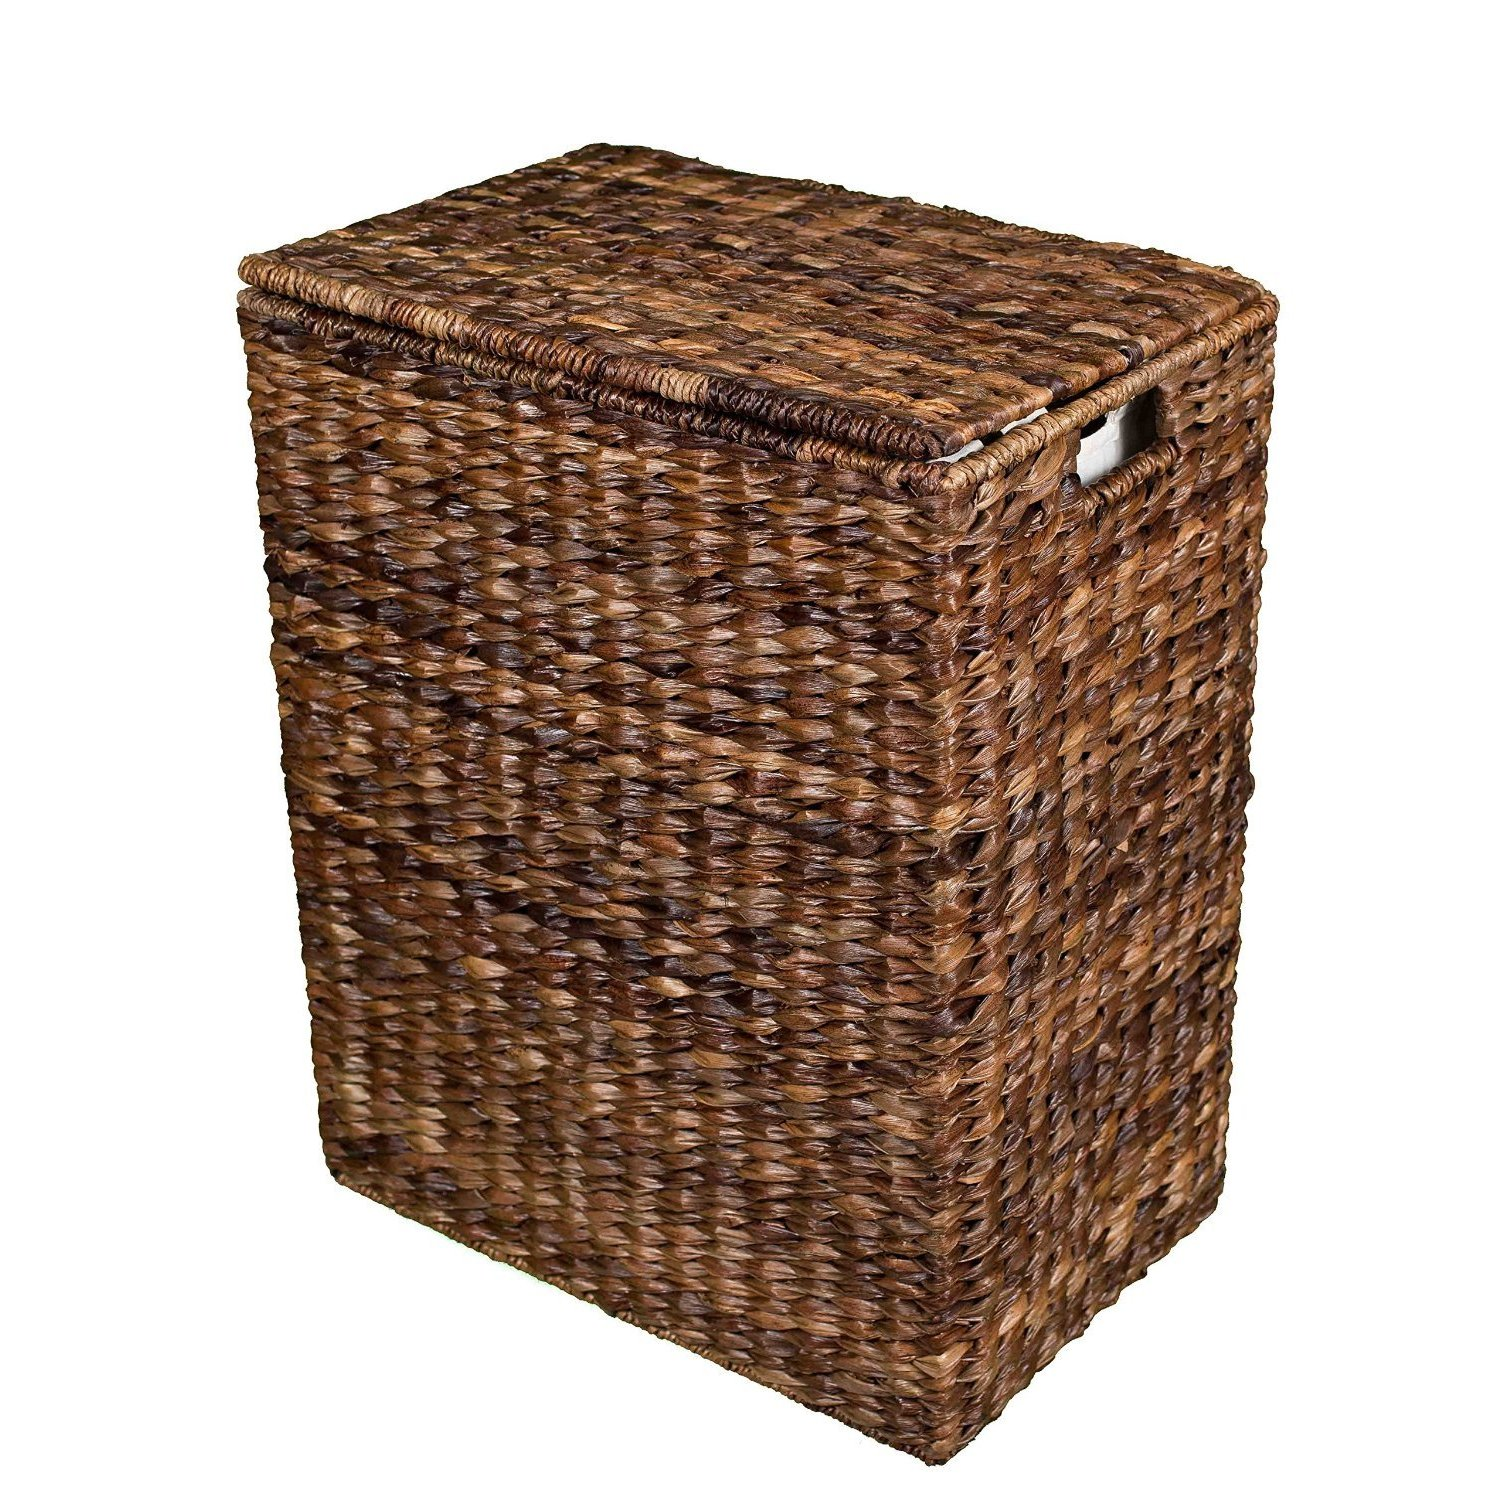 Birdrock Home Espresso Brown Abaca Laundry Hamper Overstock 12434685